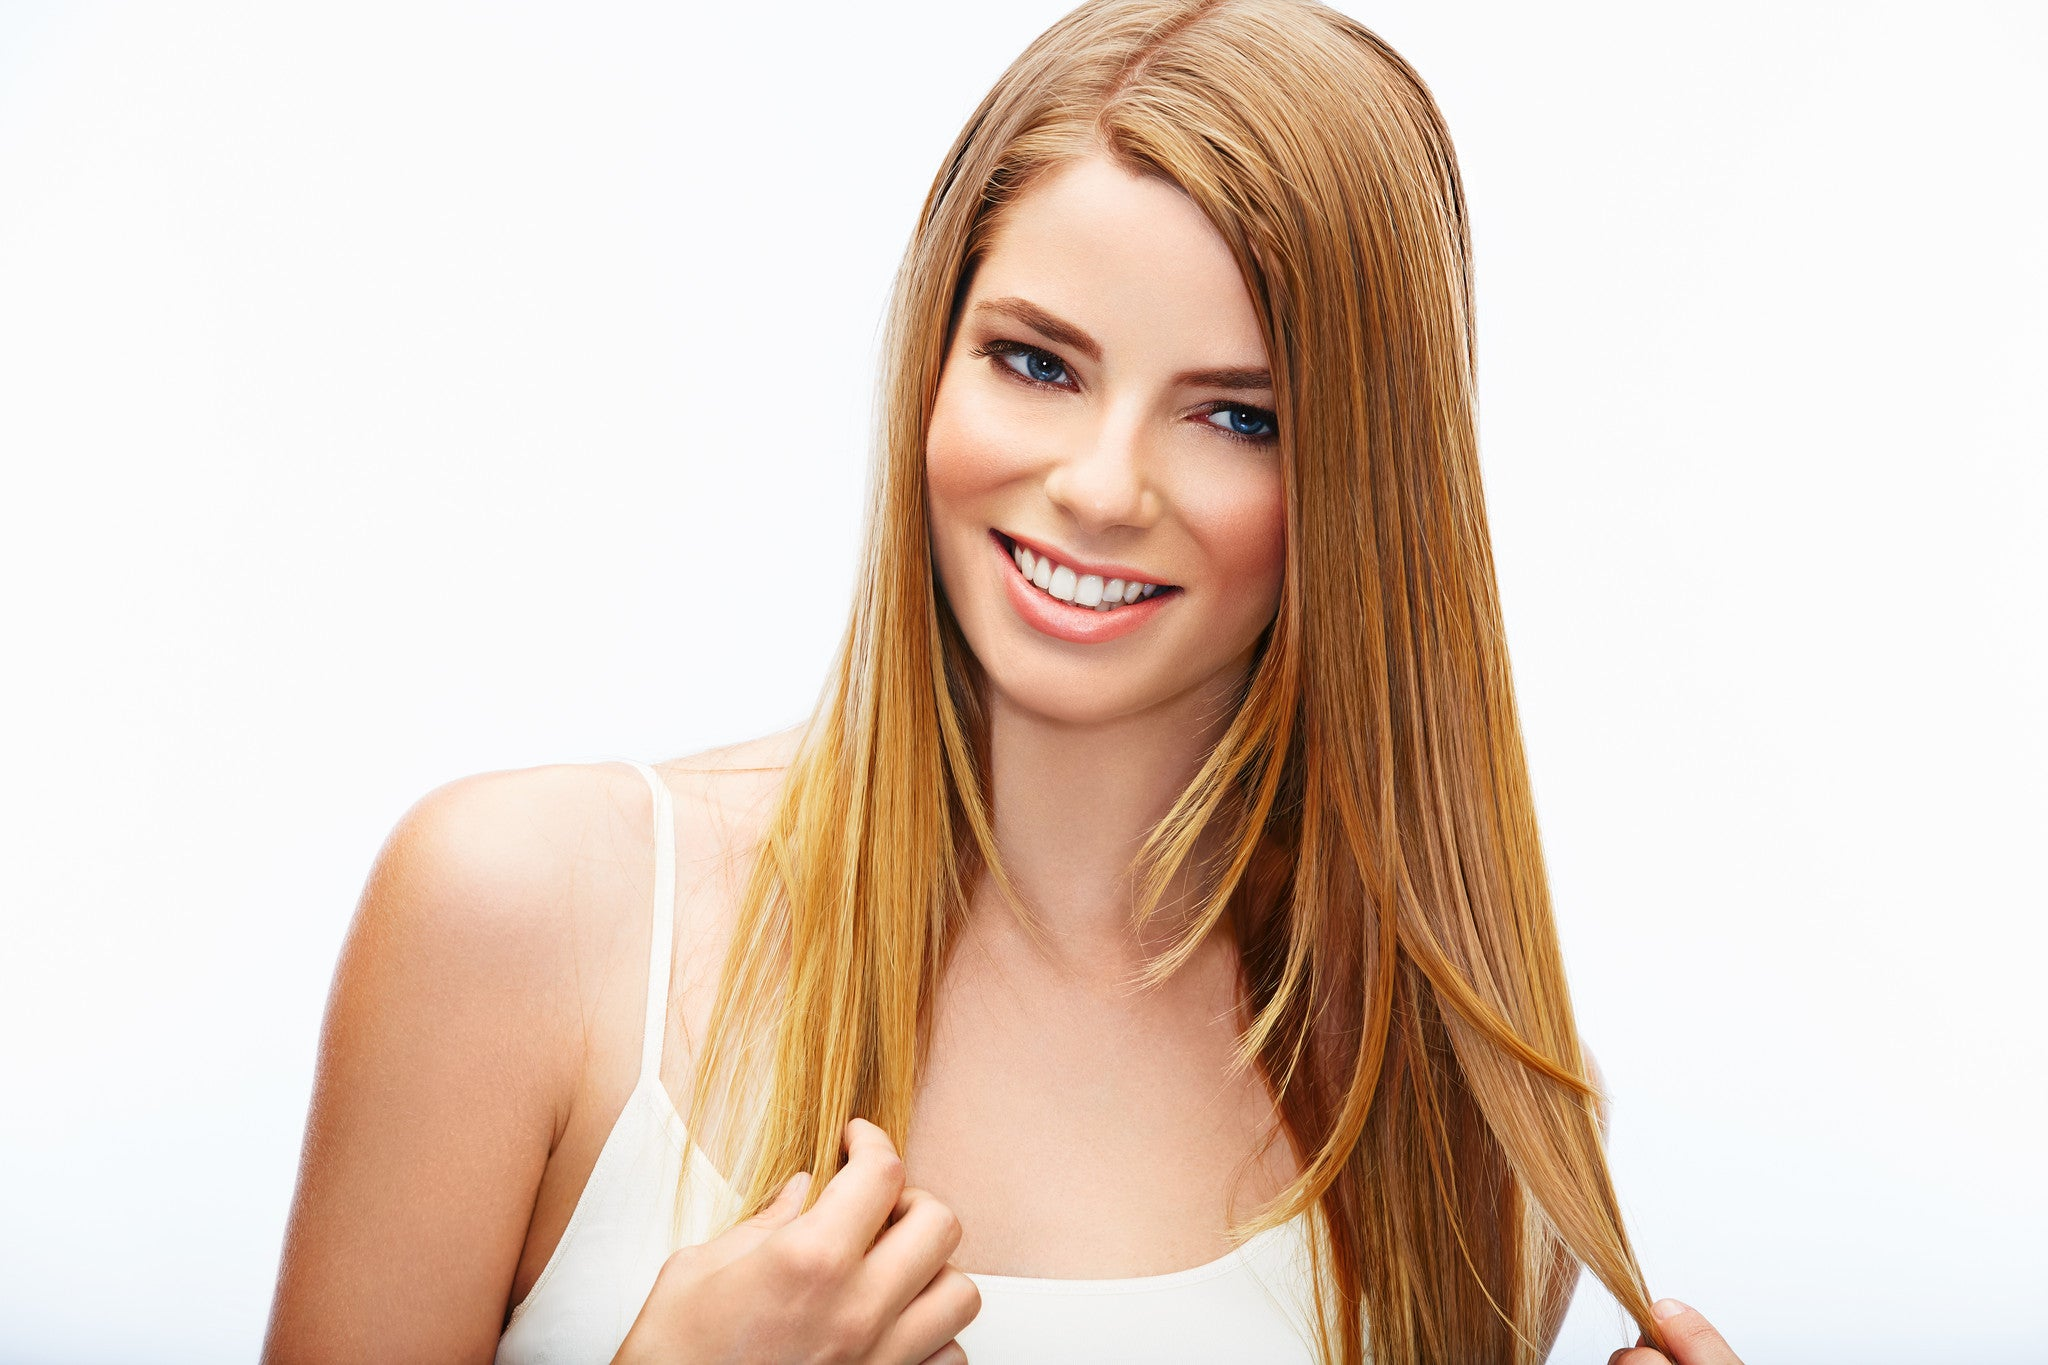 Le Prive by Hair Couture Tape-in Hair Extensions: Silky Straight